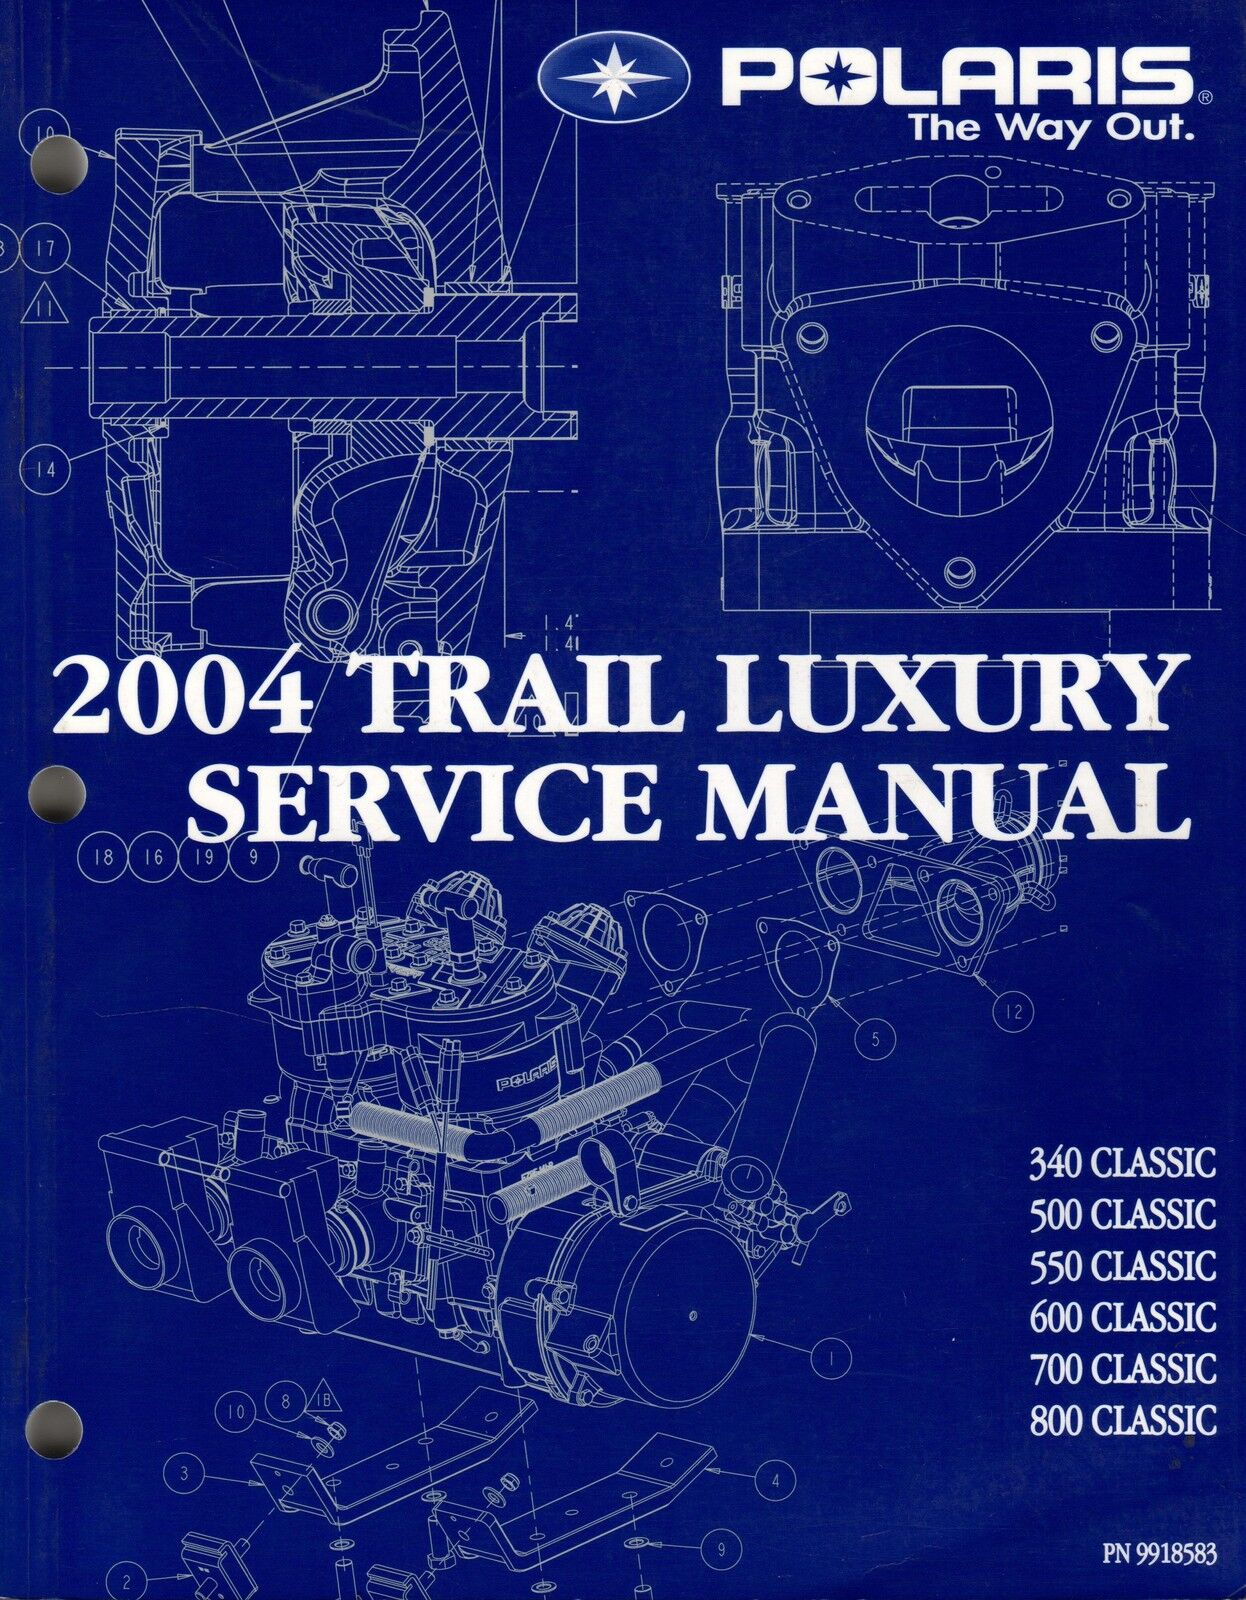 2004 POLARIS SNOWMOBILE TRAIL LUXURY SERVICE MANUAL P N 9918583 (663)